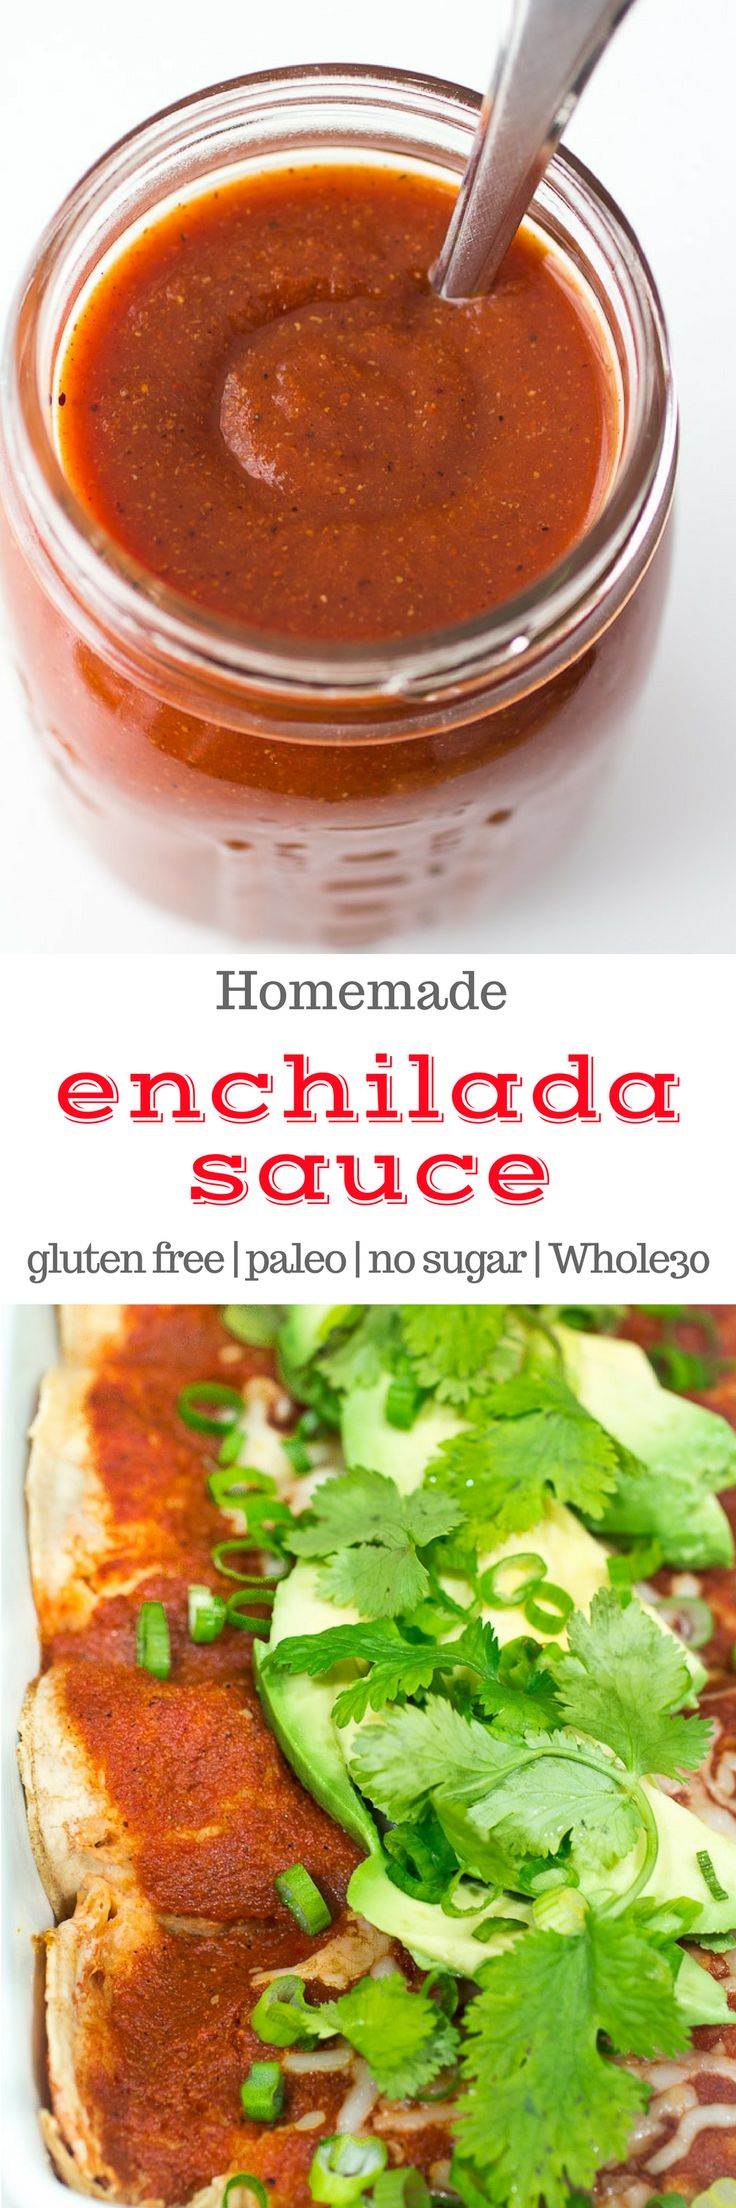 This homemade gluten free enchilada sauce only takes 30 minutes to make! It's super simple and #glutenfree #paleo #vegan and #whole30 compliant. #enchilada #recipe #texmex #30minute #30minute meals